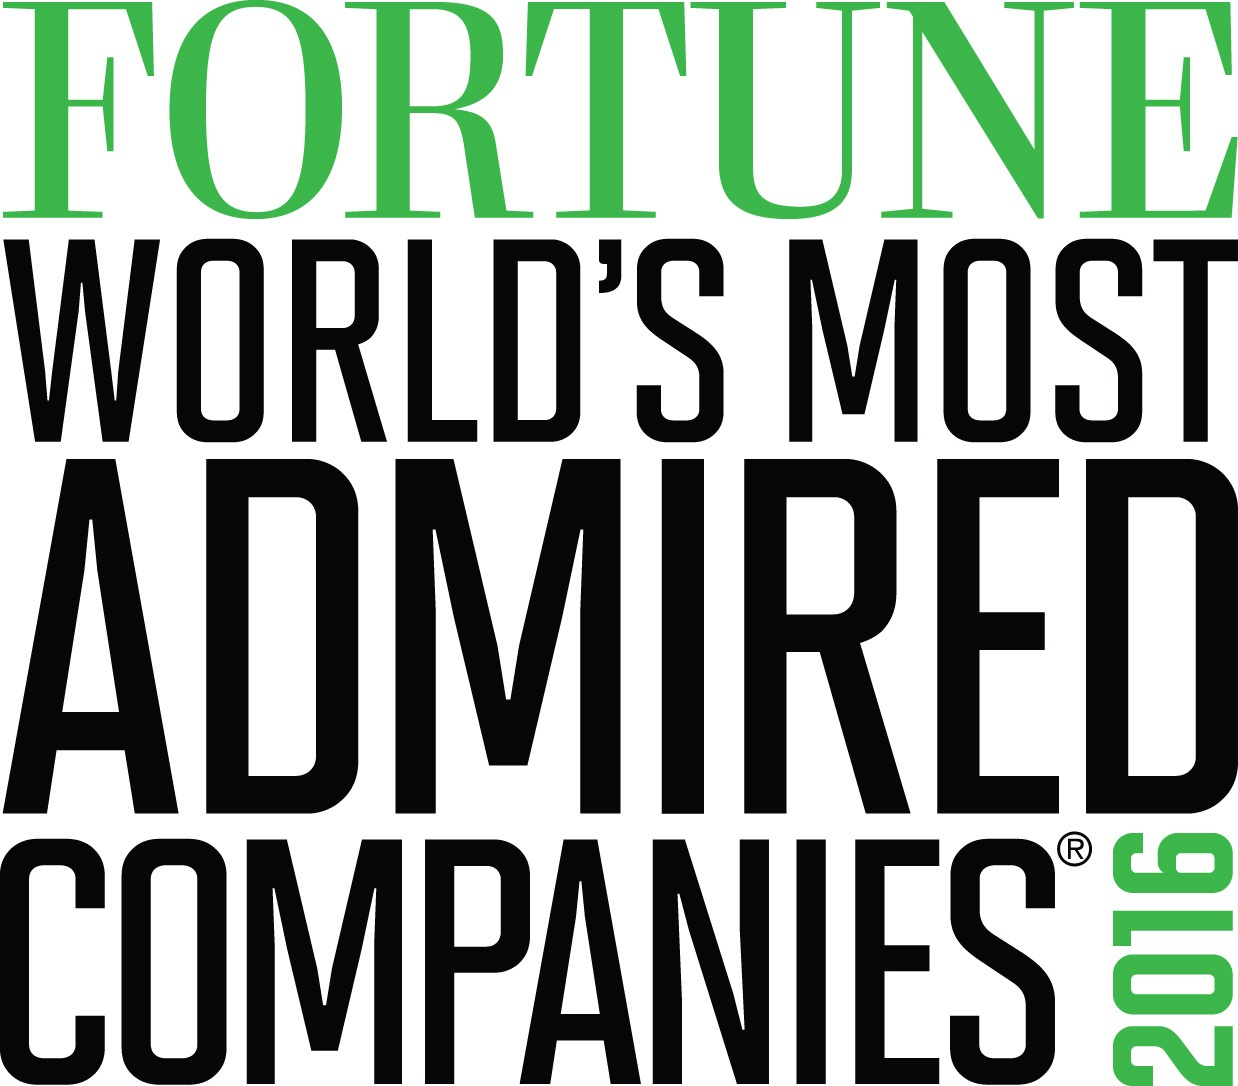 Fortune - World's most admired companies